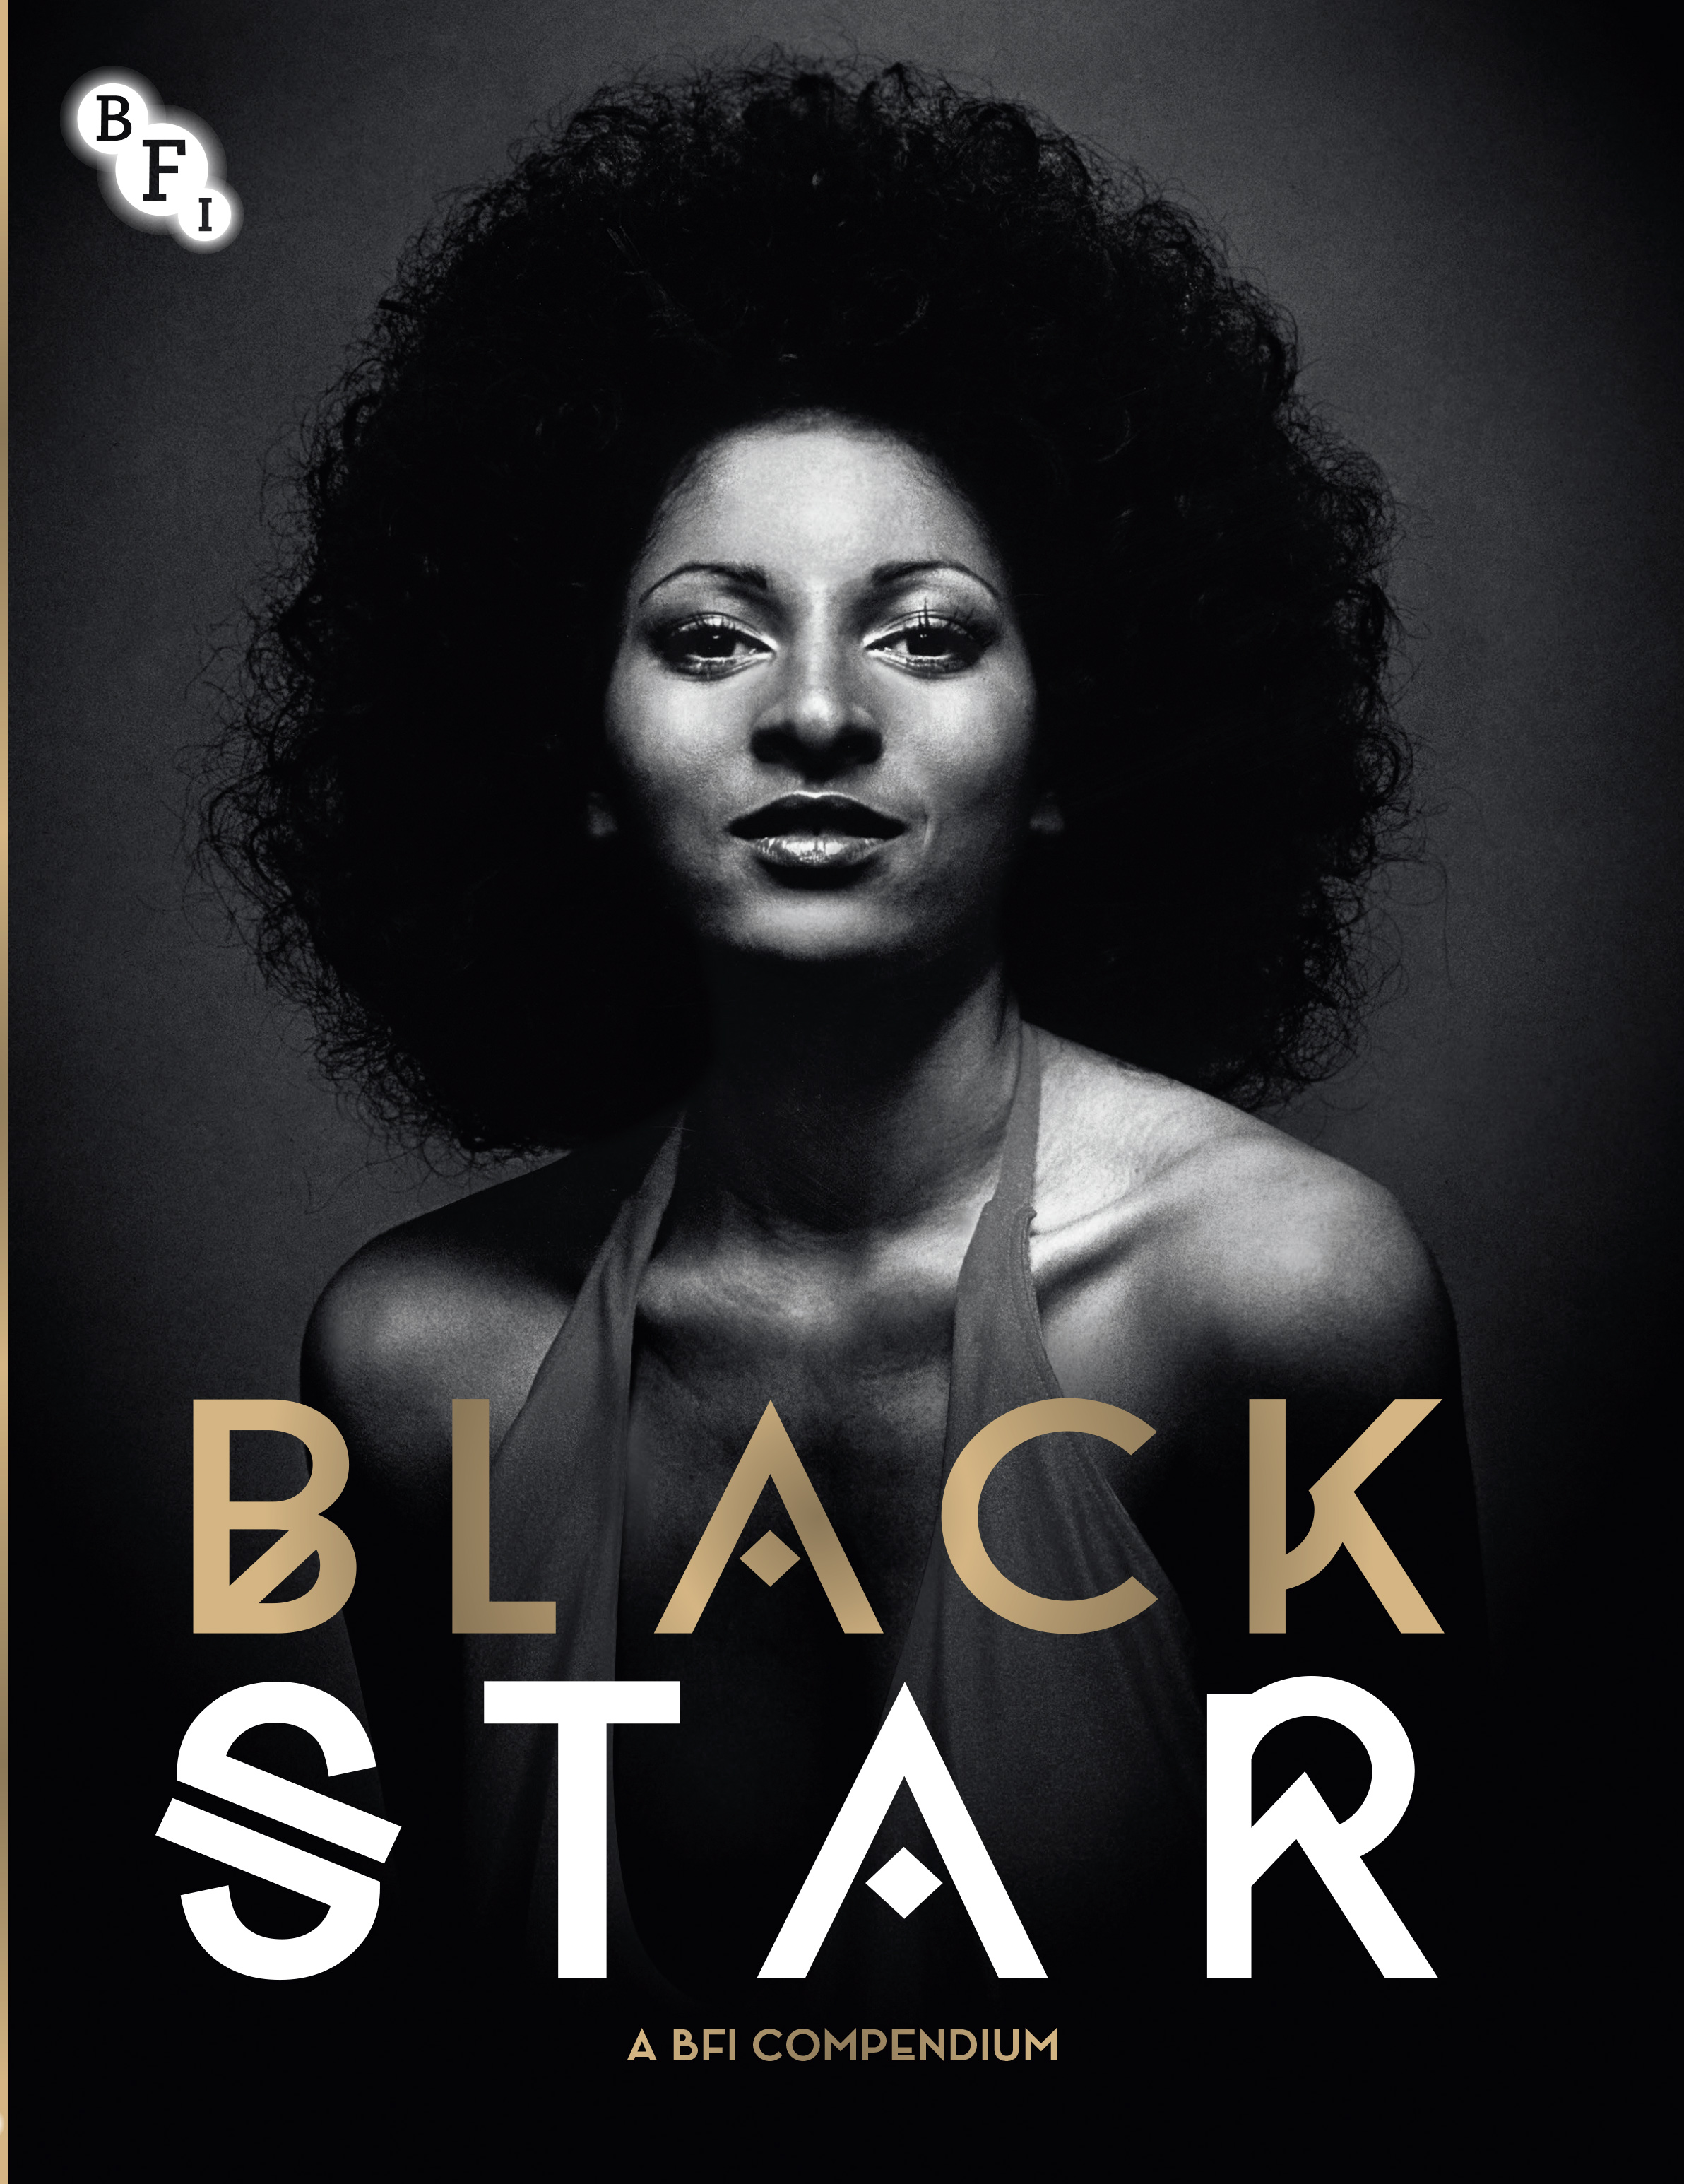 Buy Black Star - a BFI Compendium